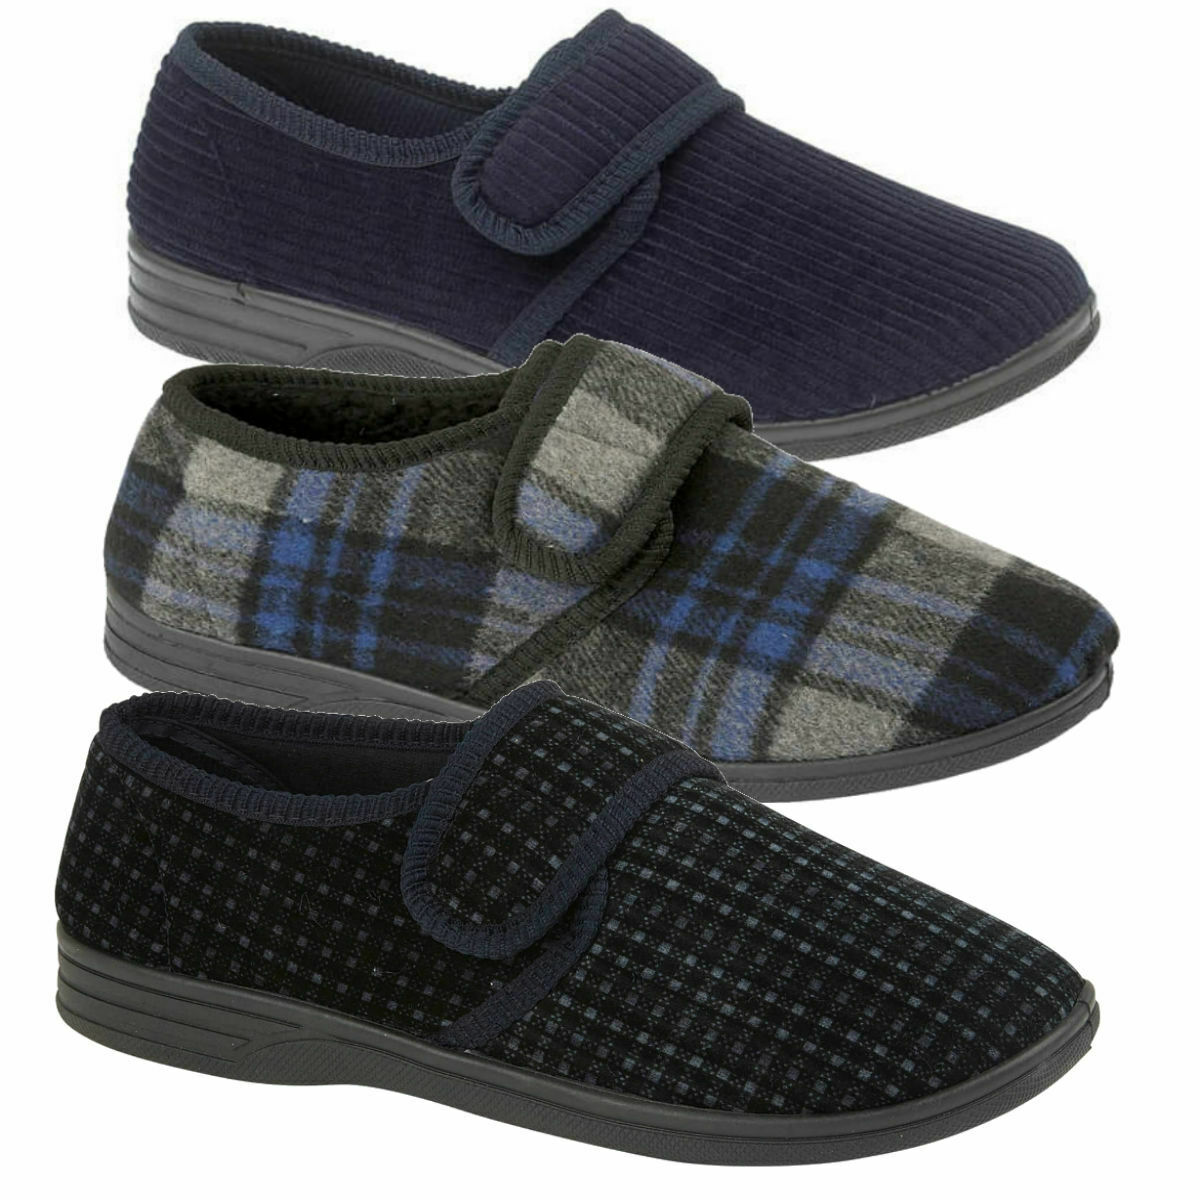 HOMYPED MENS ARNOLD 2 COMFORTABLE